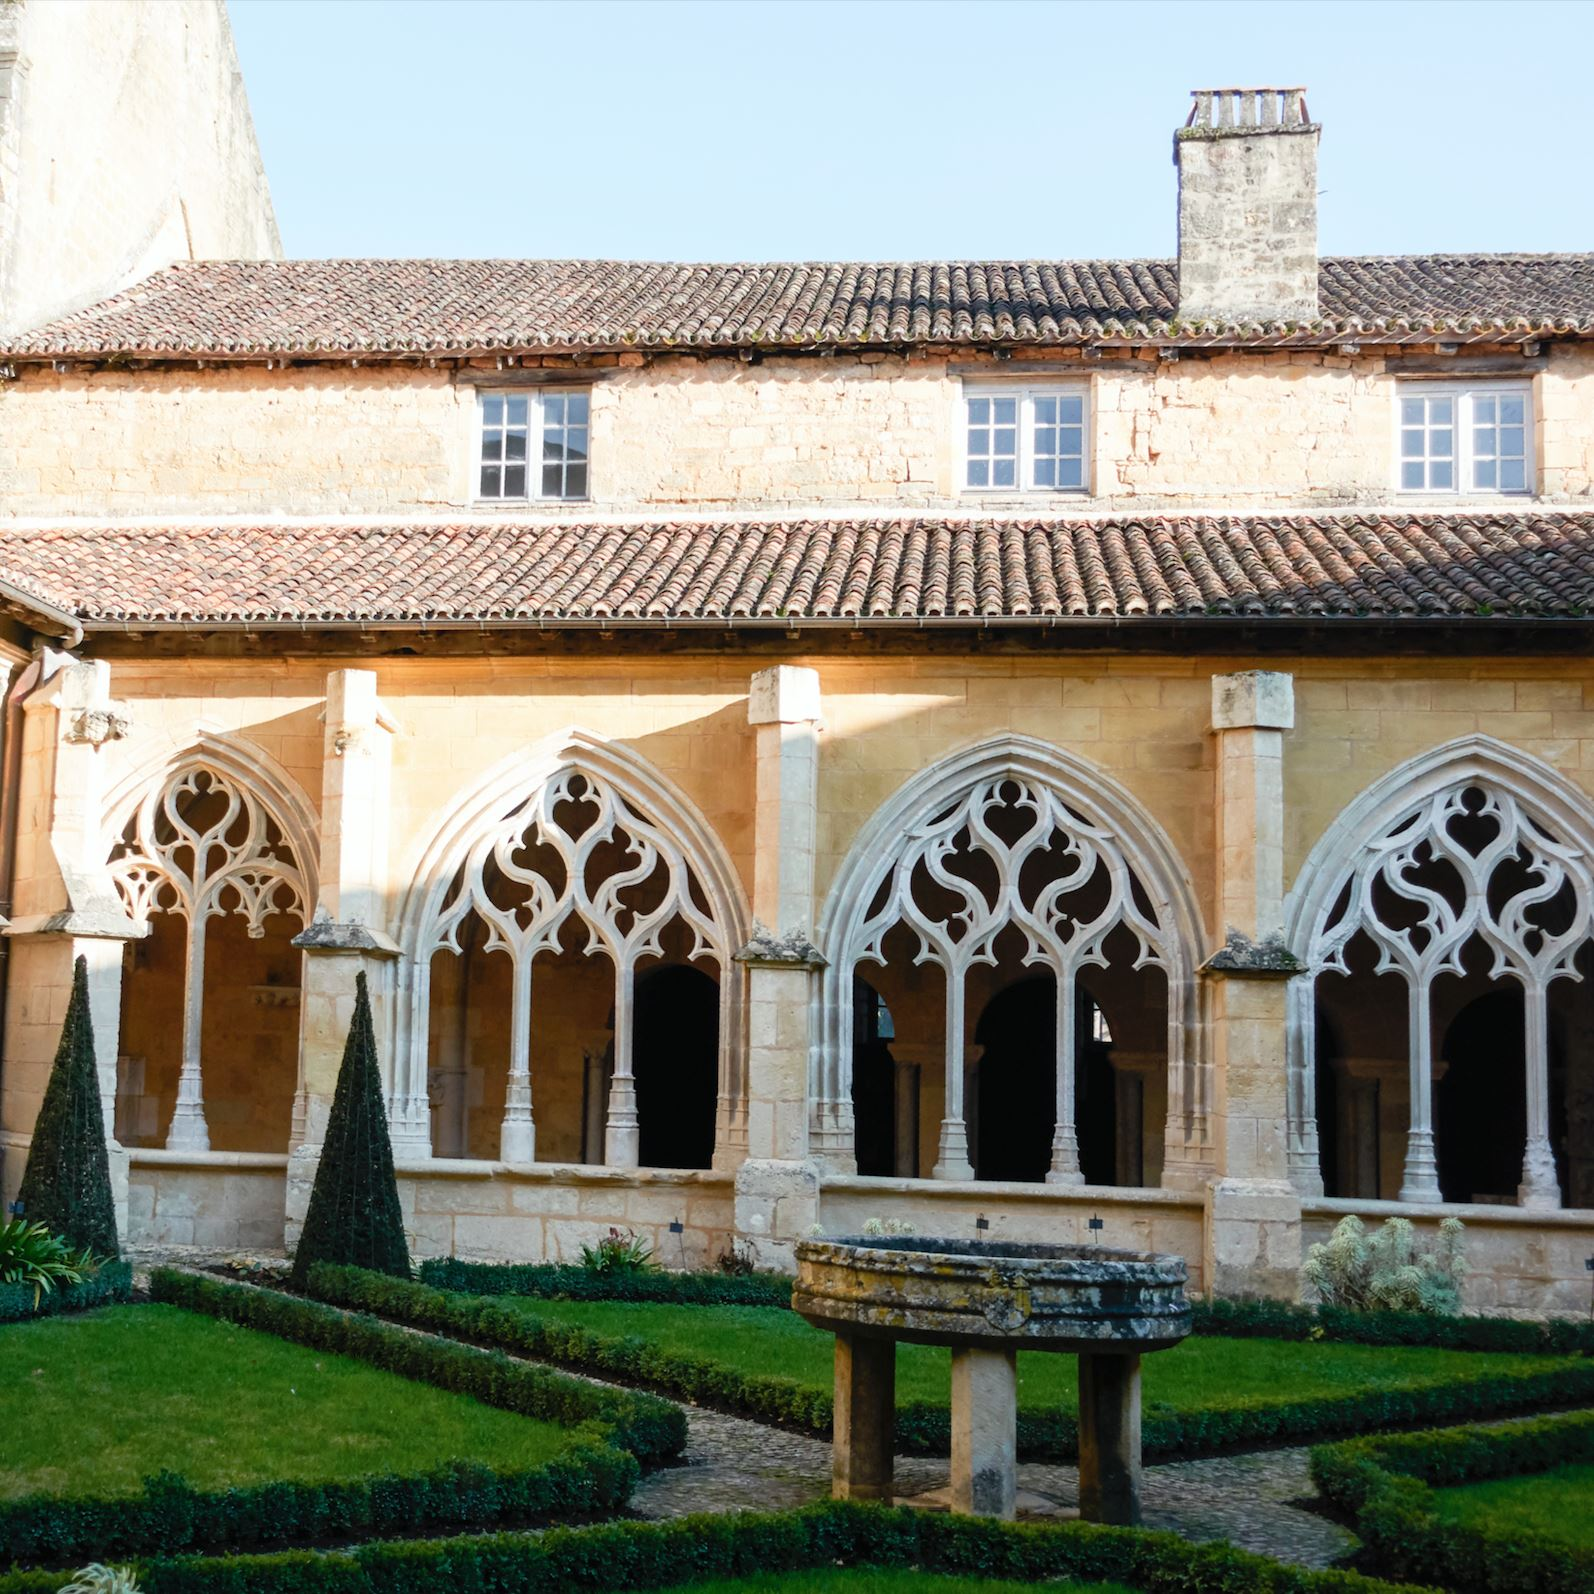 Visit of cloister of Cadouin from 10:00am